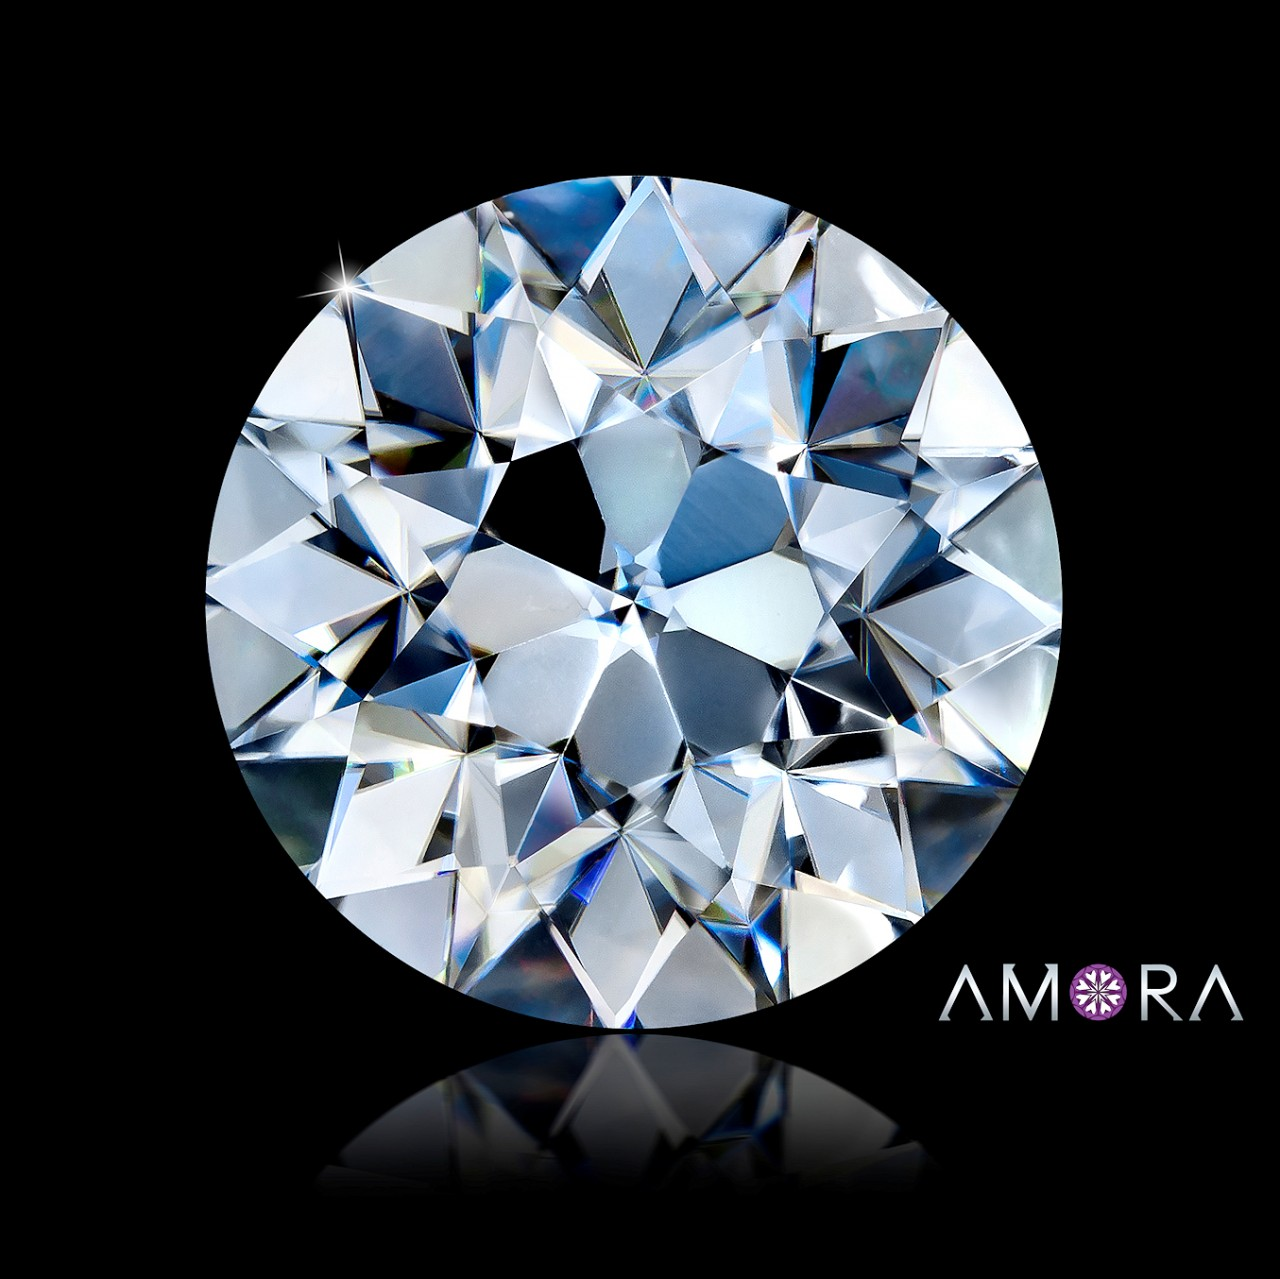 jewelry are bashford canadamark amora conflict free two gem diamonds engagement rings site